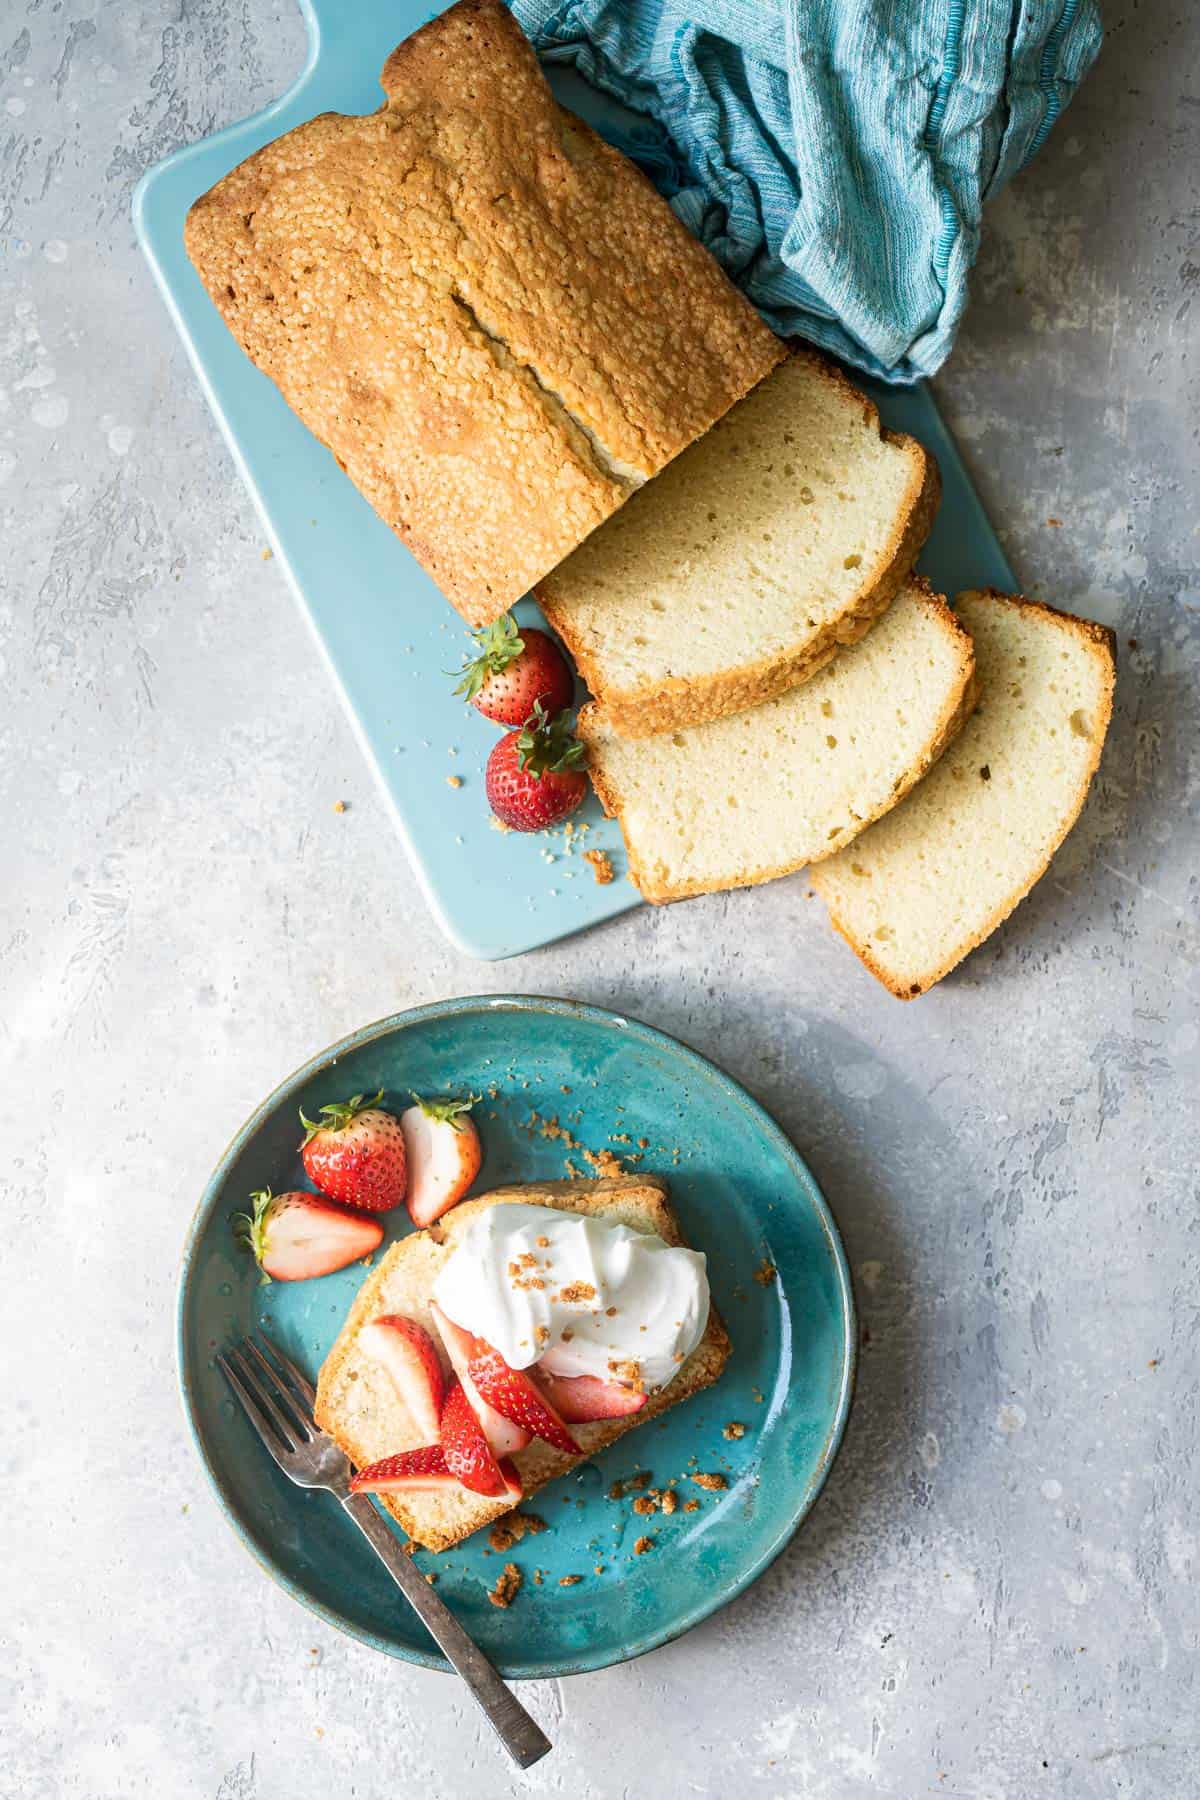 Butter pound cake recipe on a plate with strawberries and cream